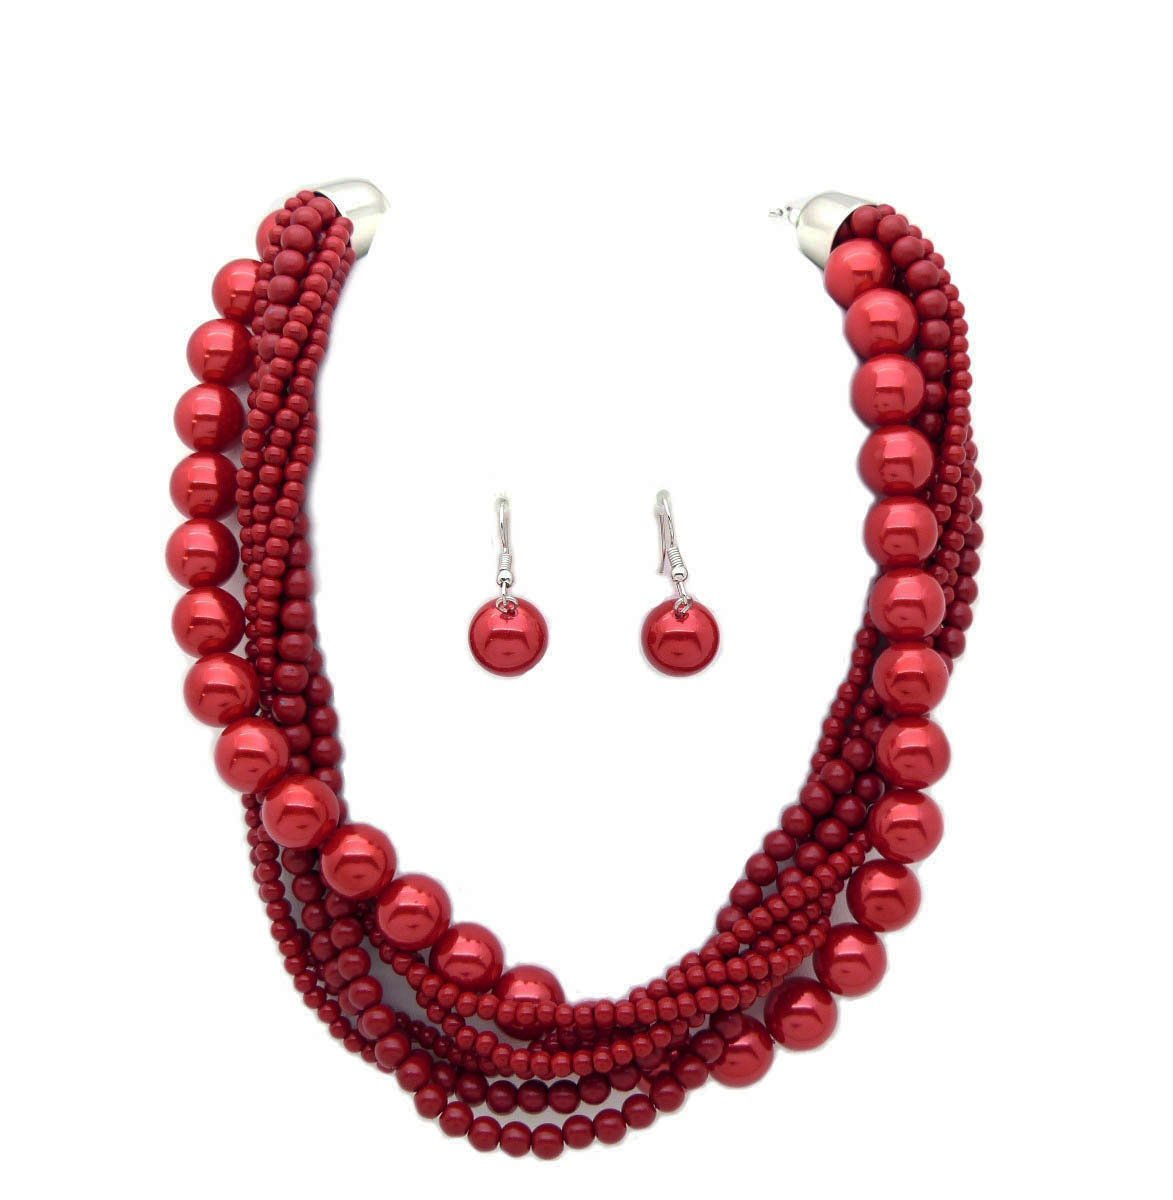 Fashion 21 Women's Twisted Multi-Strand Simulated Pearl Statement Necklace and Earrings Set (Red Wine)